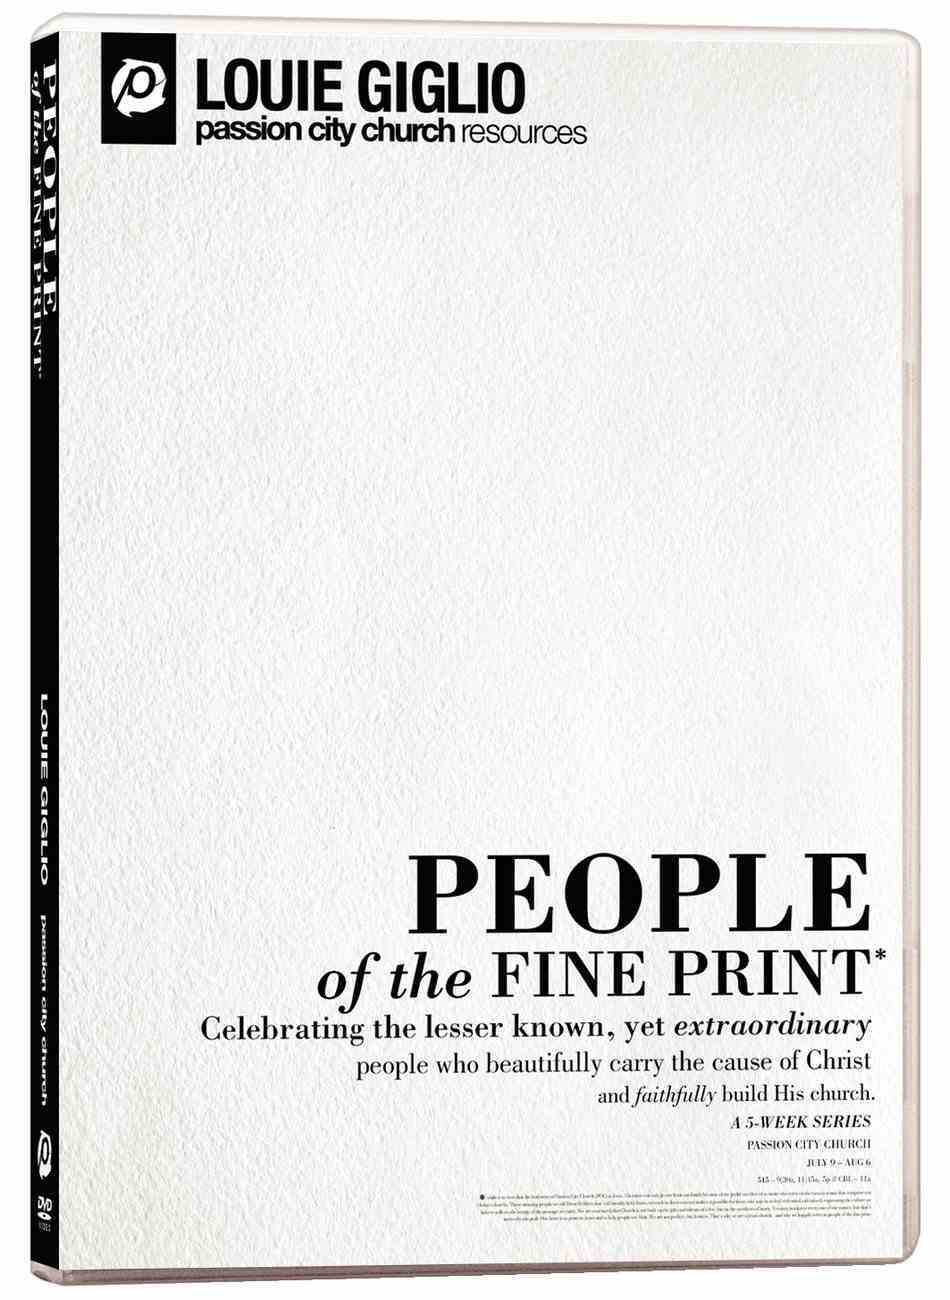 People of the Fine Print DVD